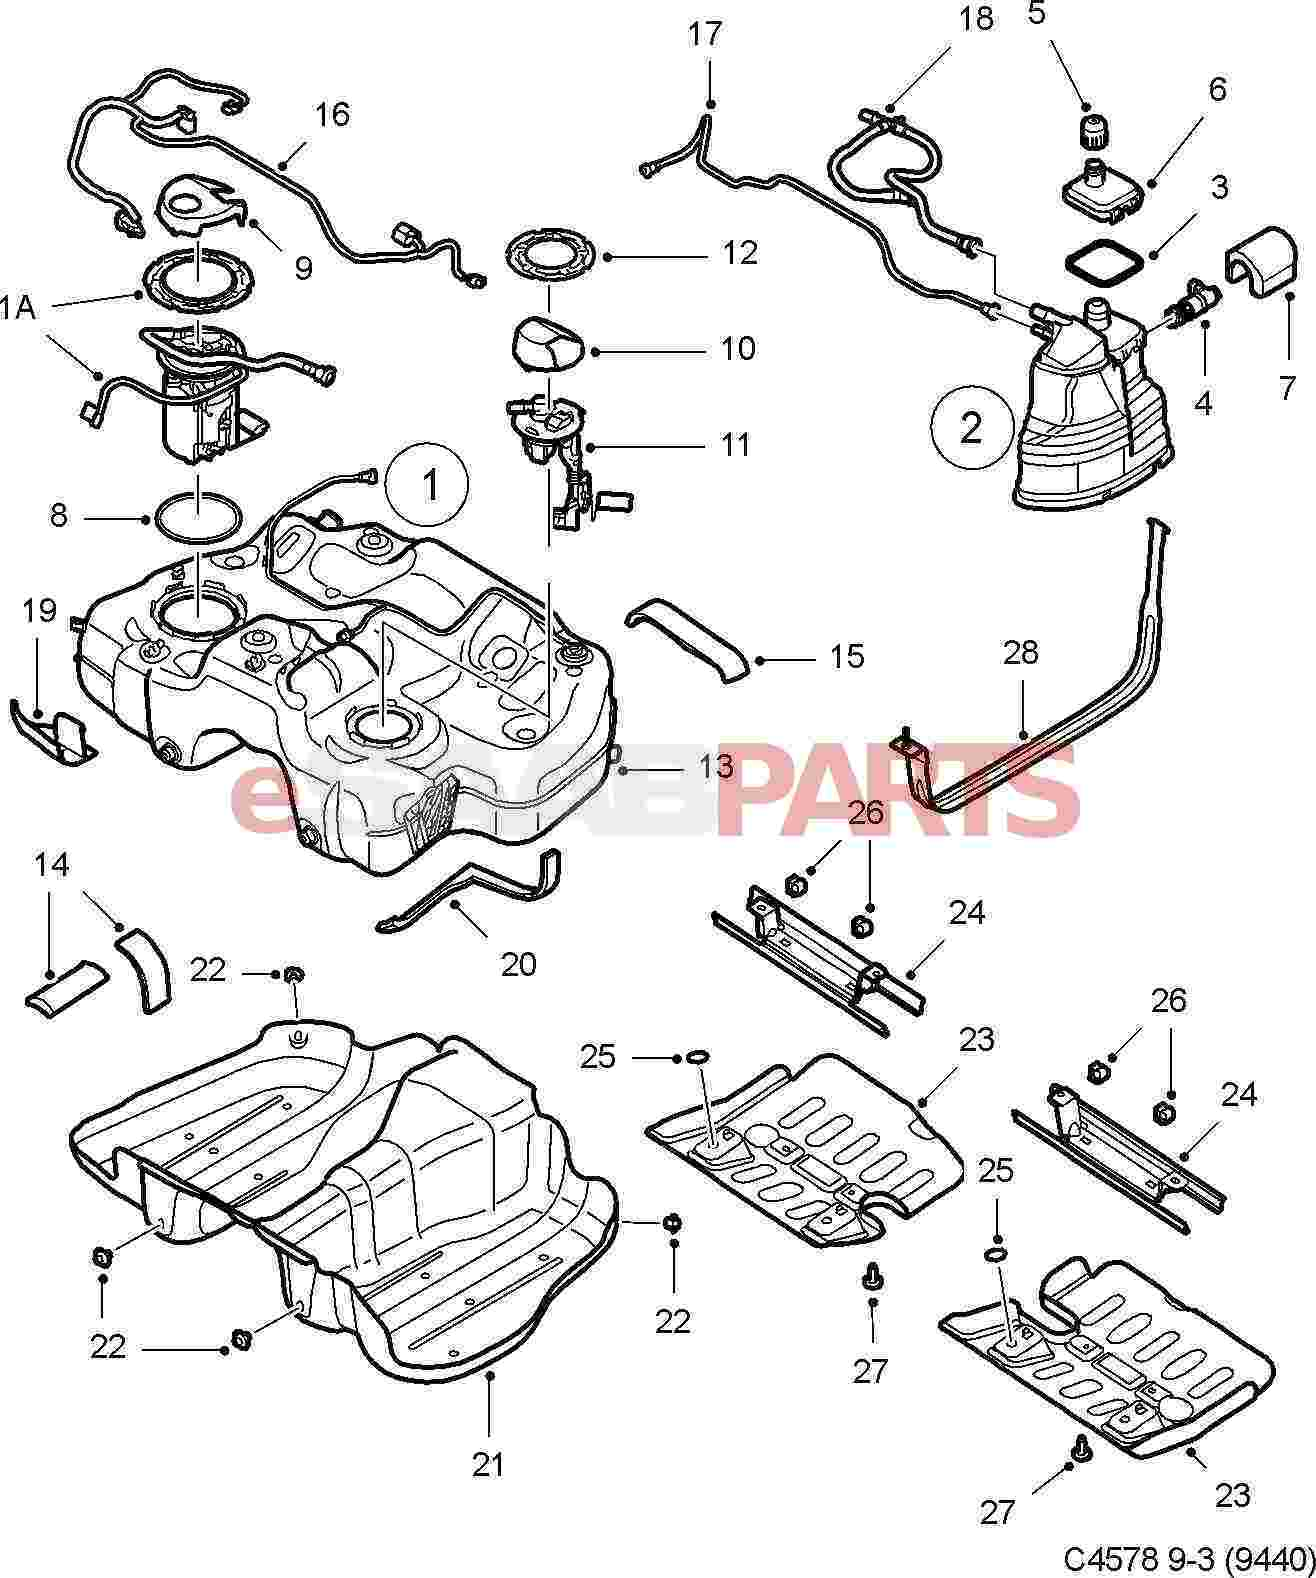 hight resolution of esaabparts com saab 9 3 9440 u003e engine parts u003e fuel tank u003e fuel saab 900 fuel pump wiring diagram saab fuel pump diagram